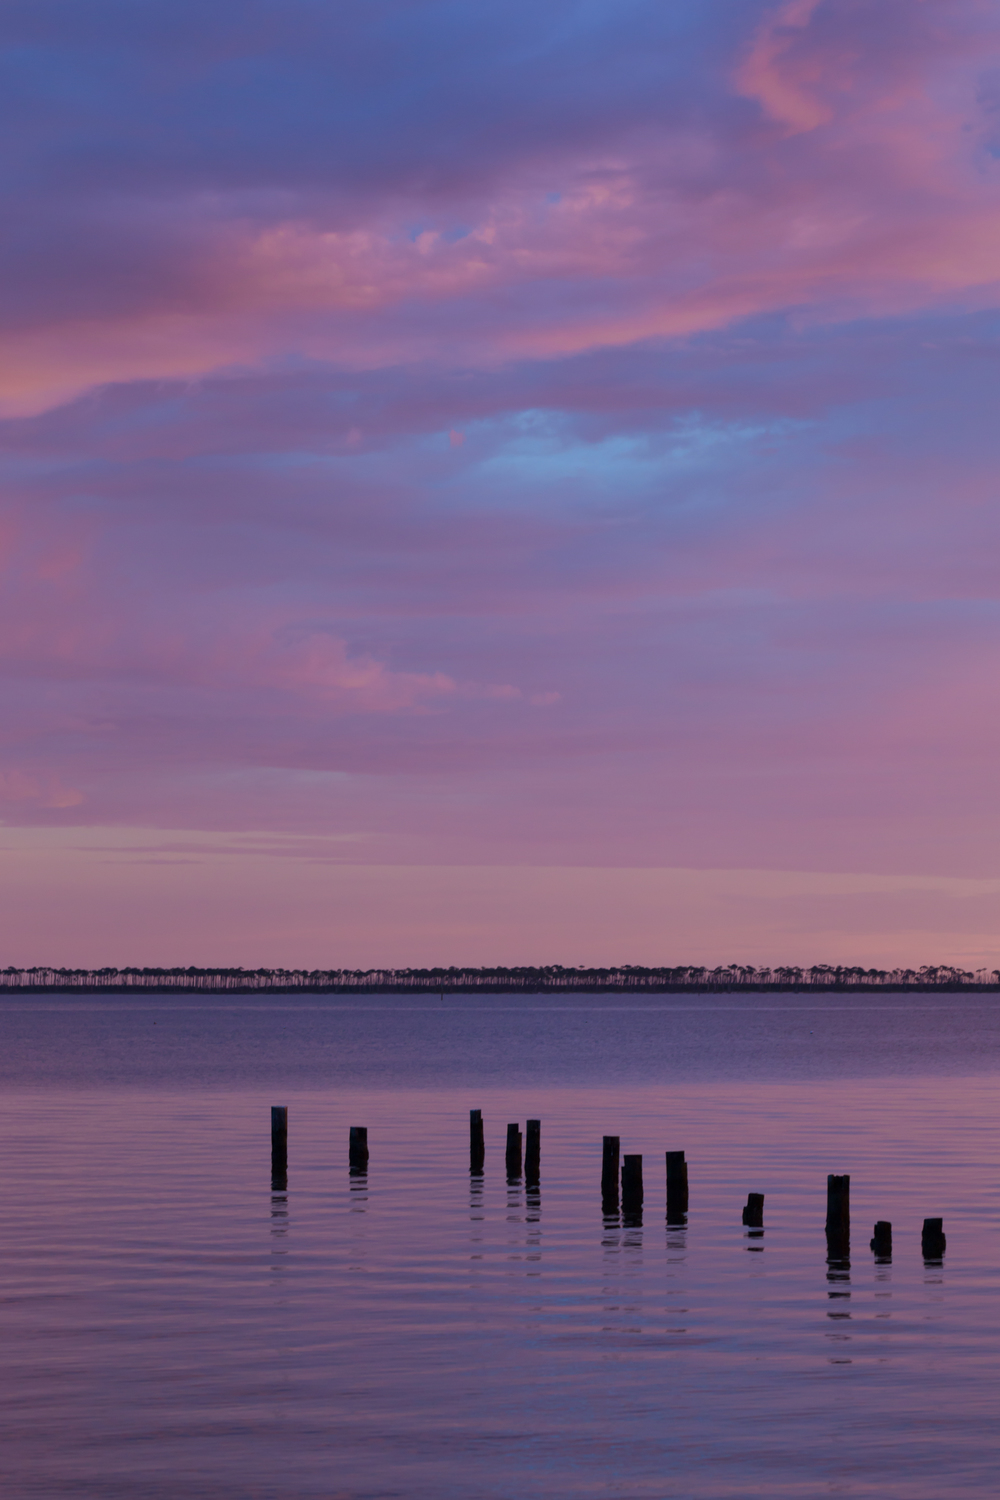 Mississippi Sound at Dusk (pink, purple beach sunset photo)